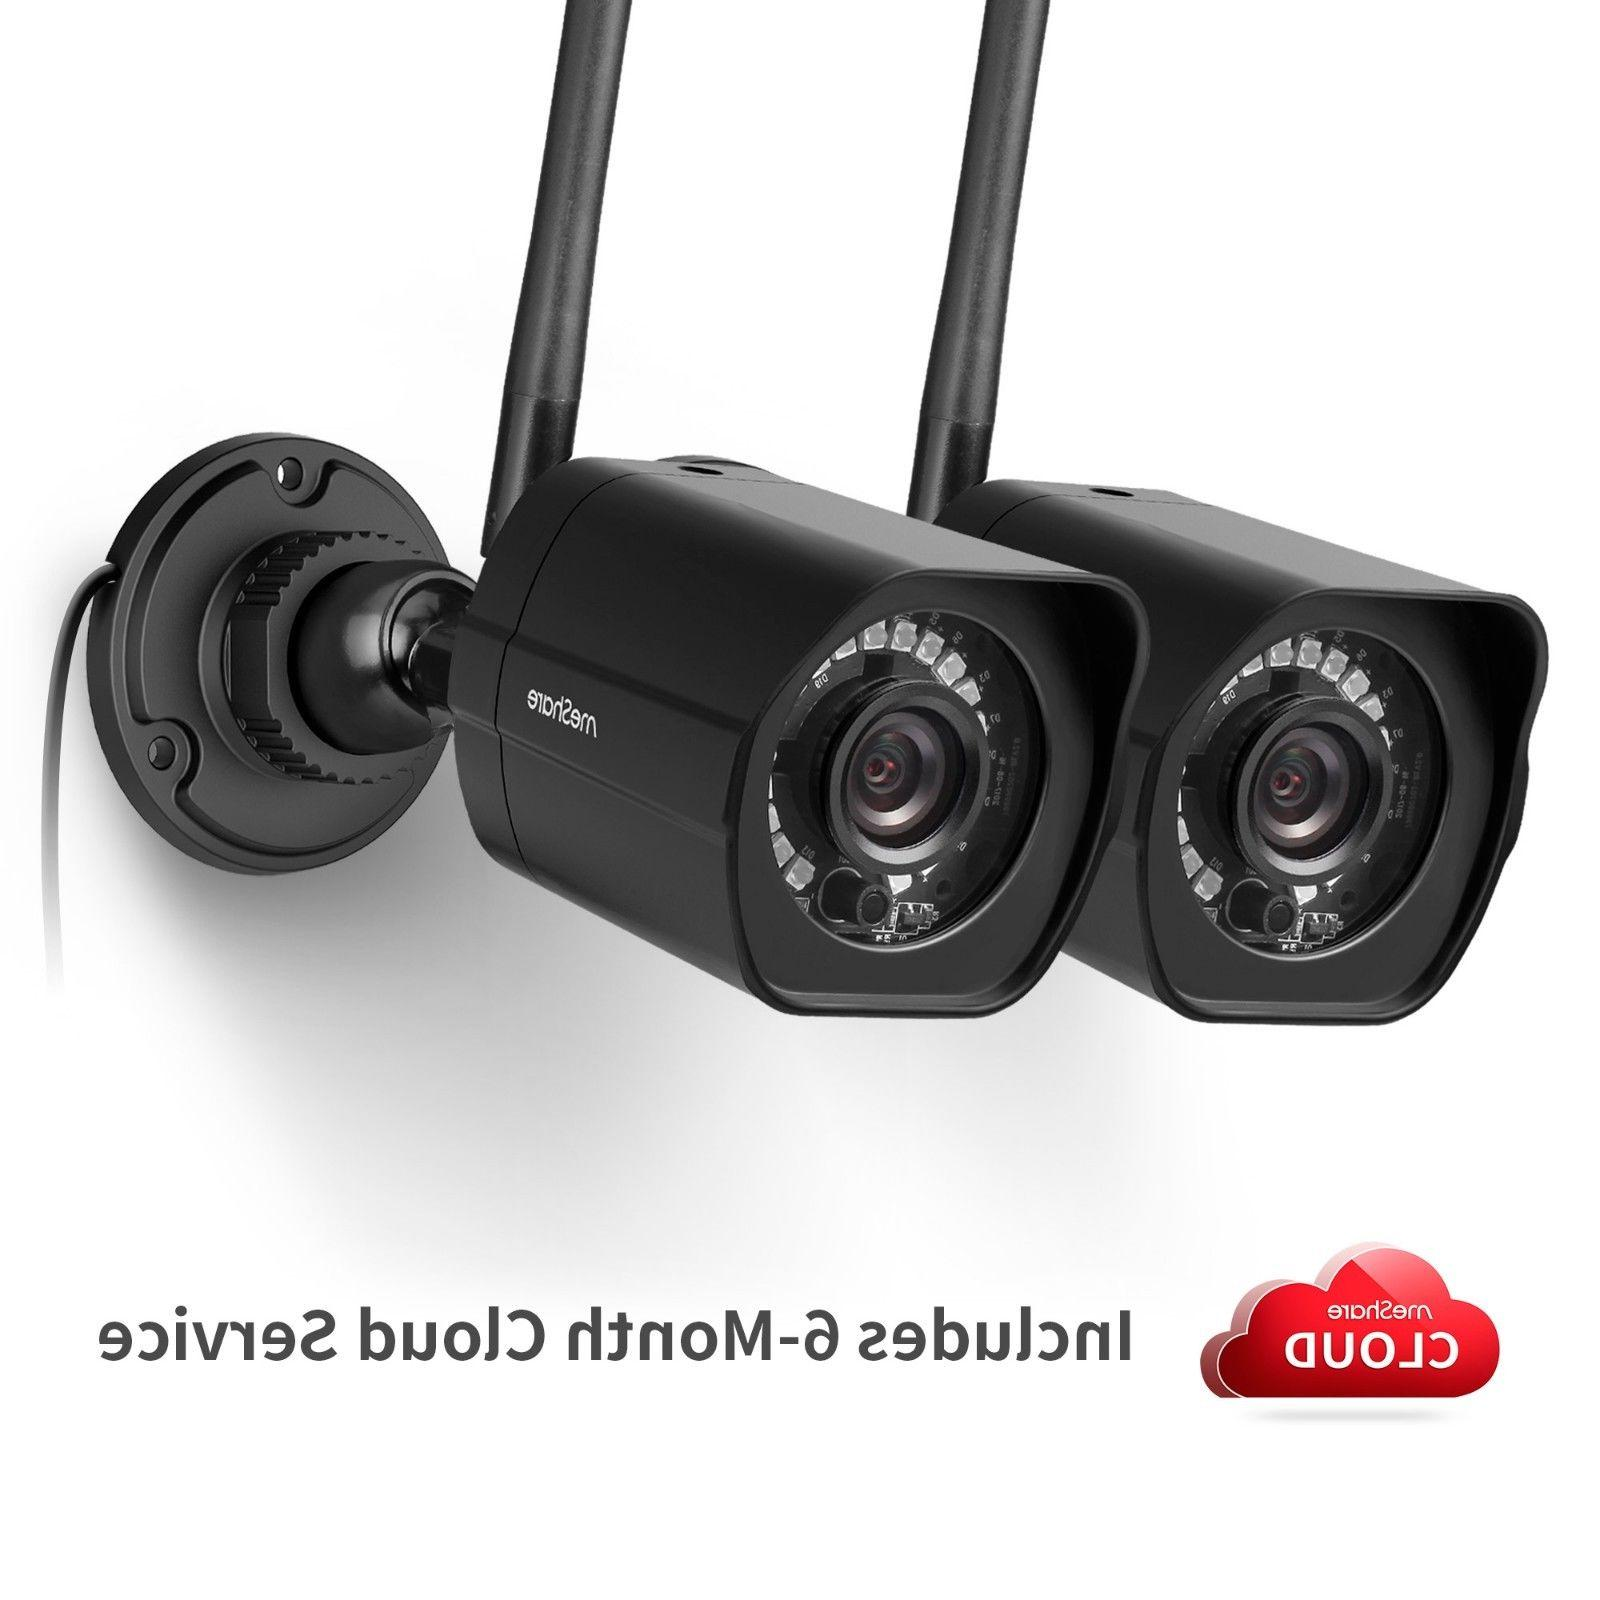 1080p outdoor wireless security camera 2 pack